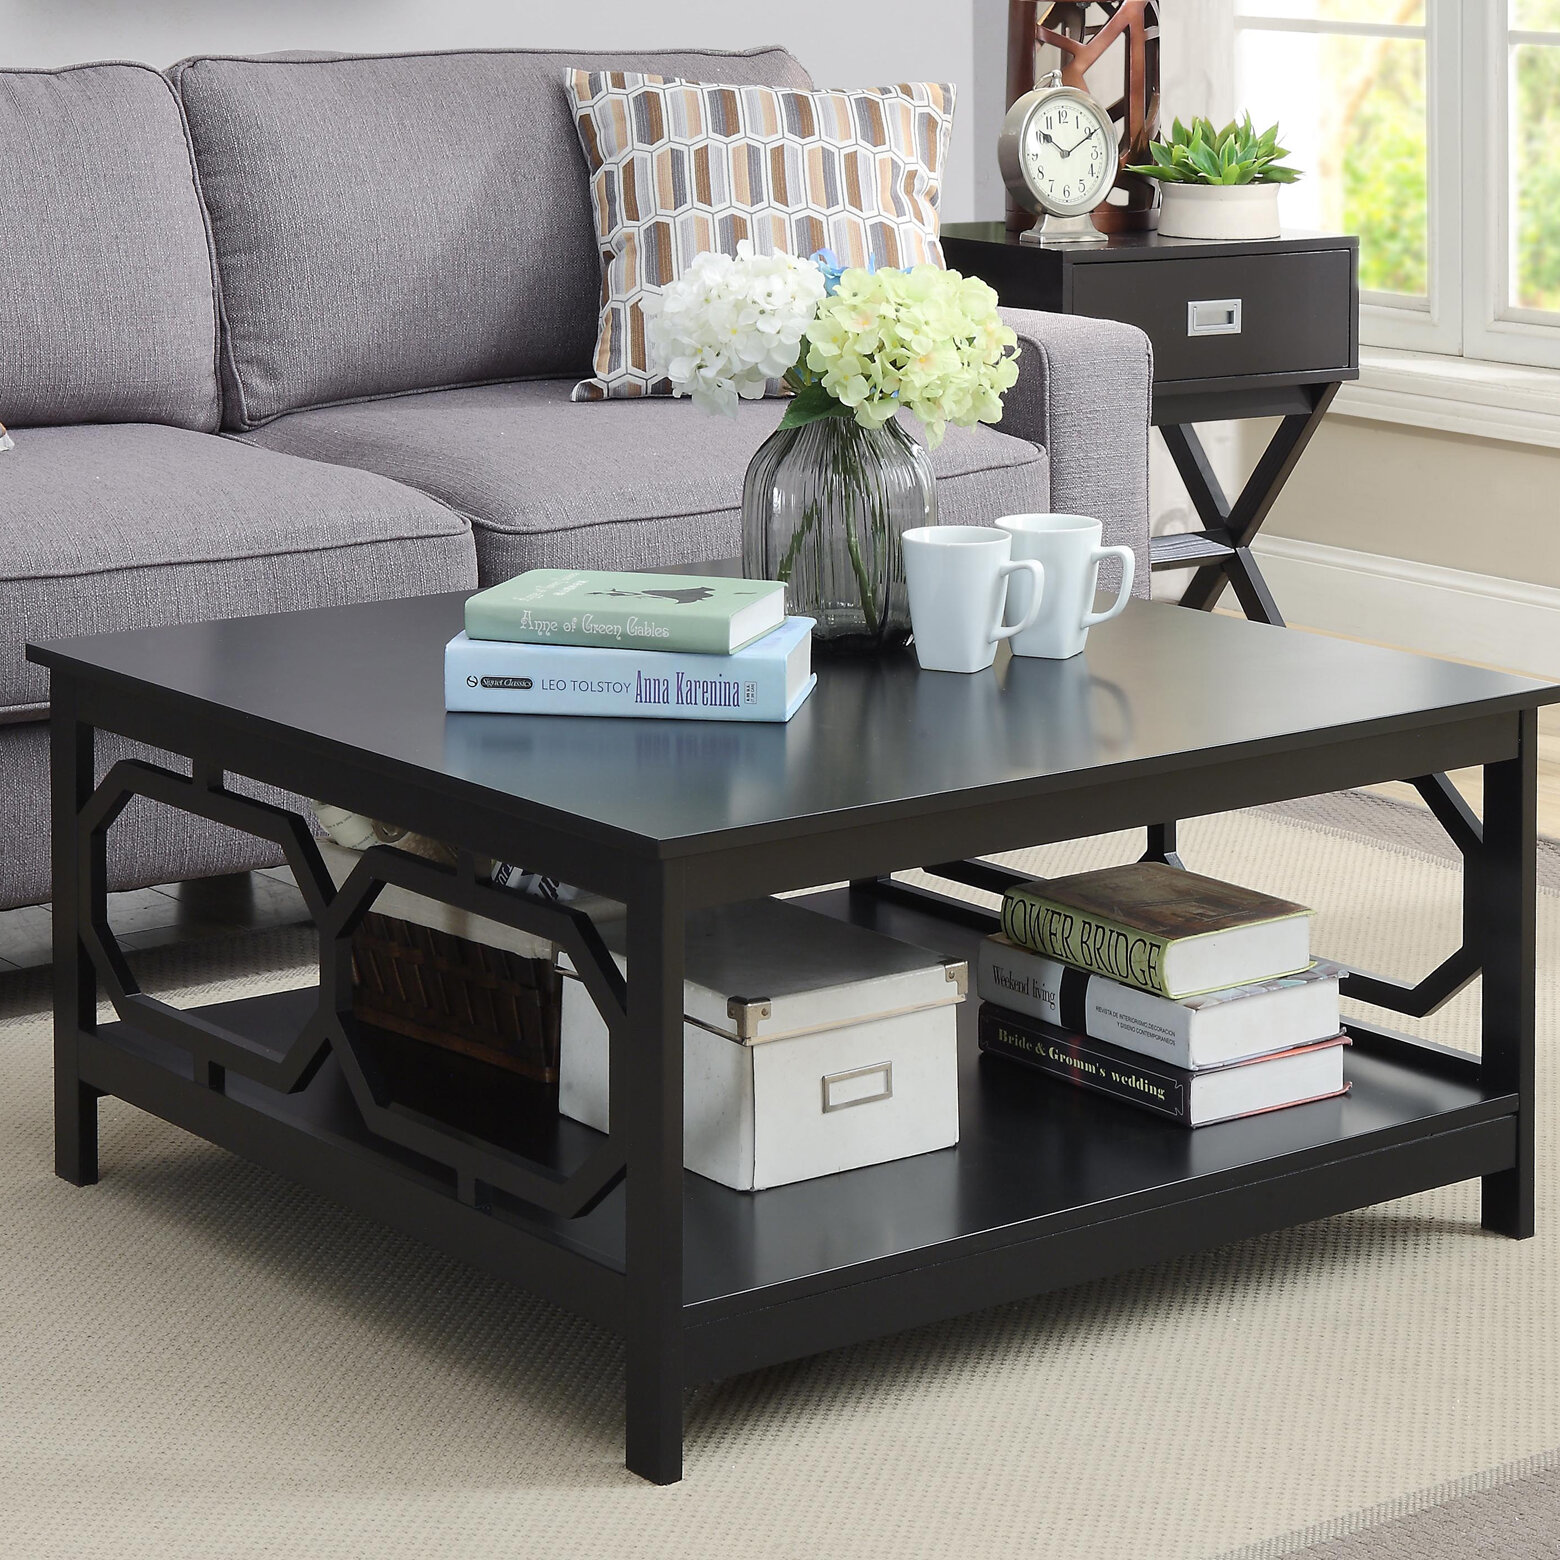 Picture of: Black Square Coffee Tables You Ll Love In 2020 Wayfair